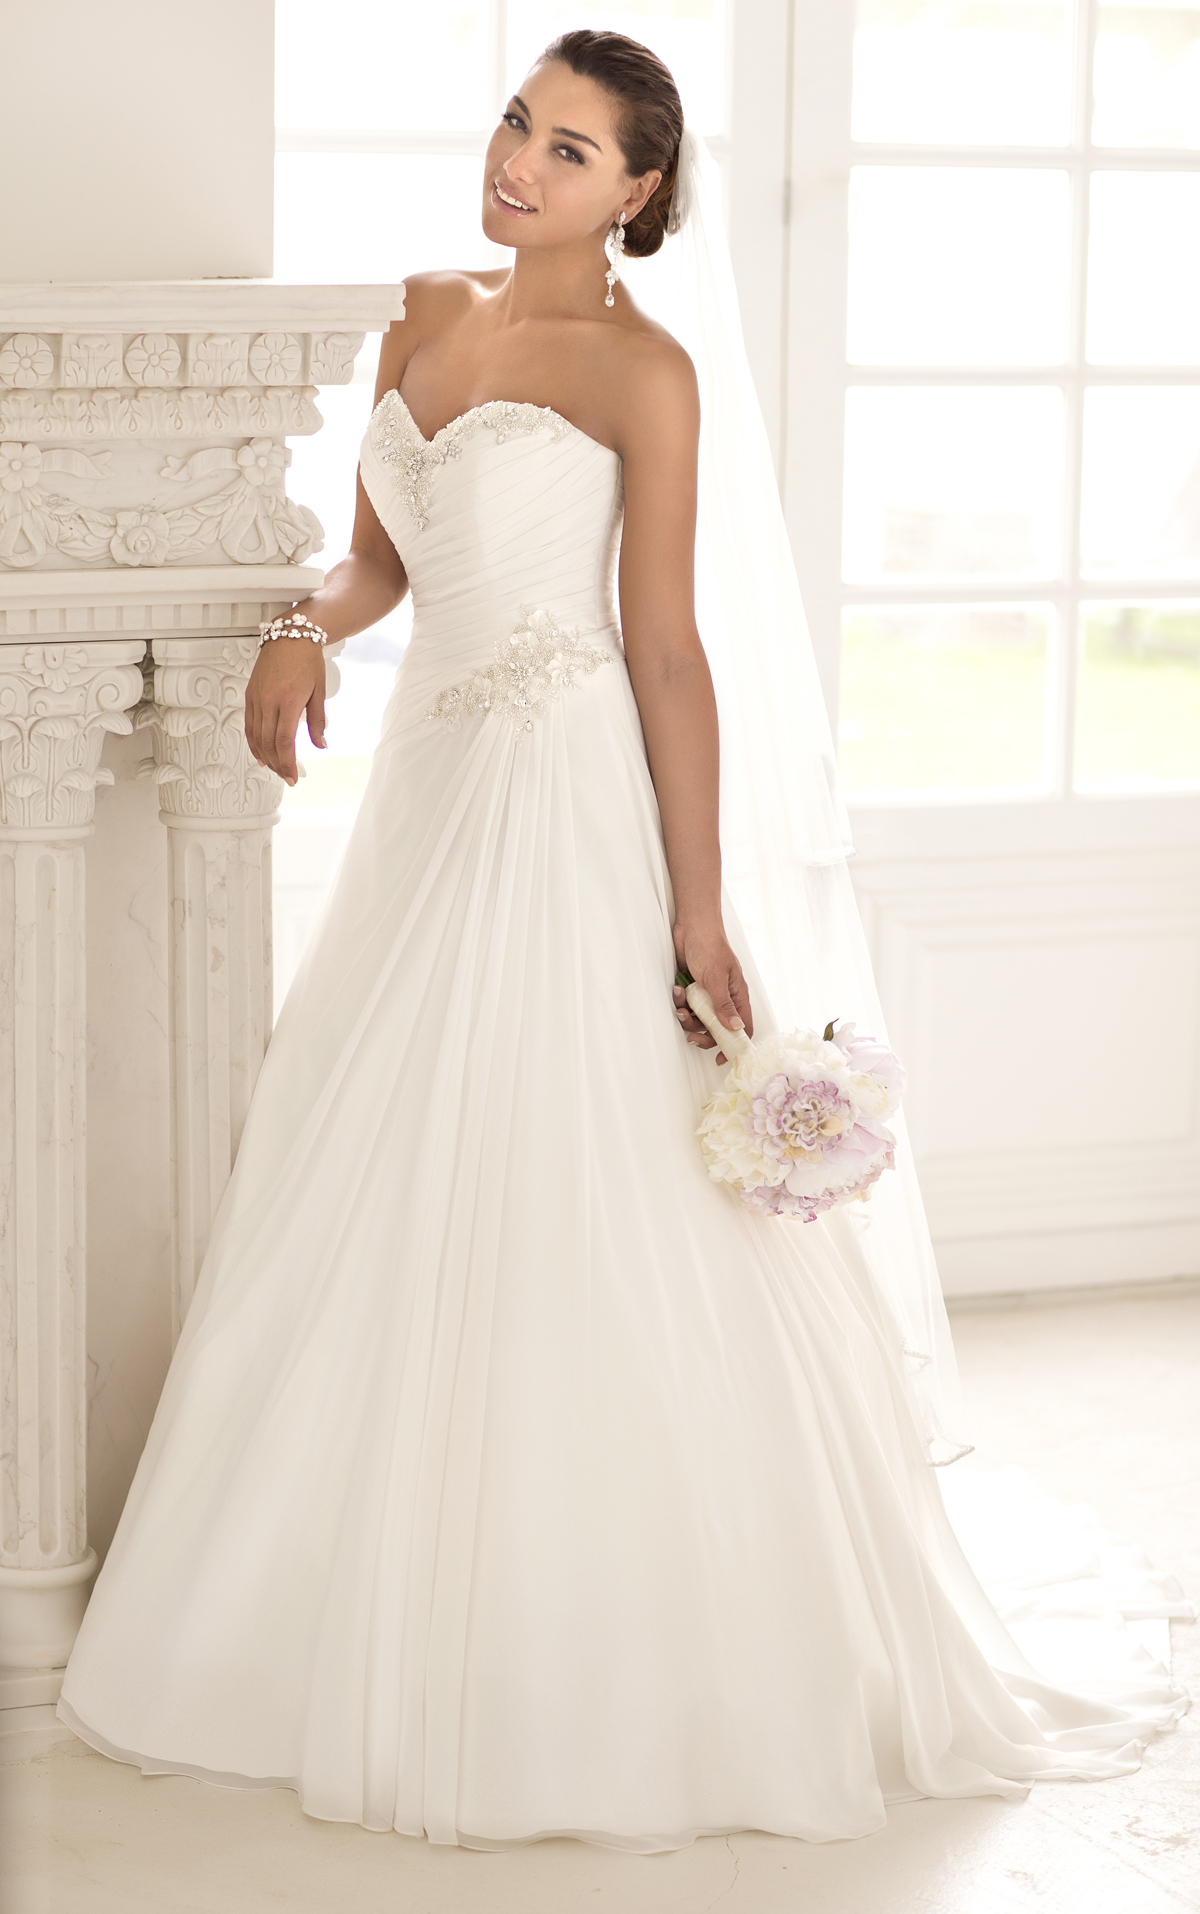 stella-york-wedding-dresses-2014-23-01162014